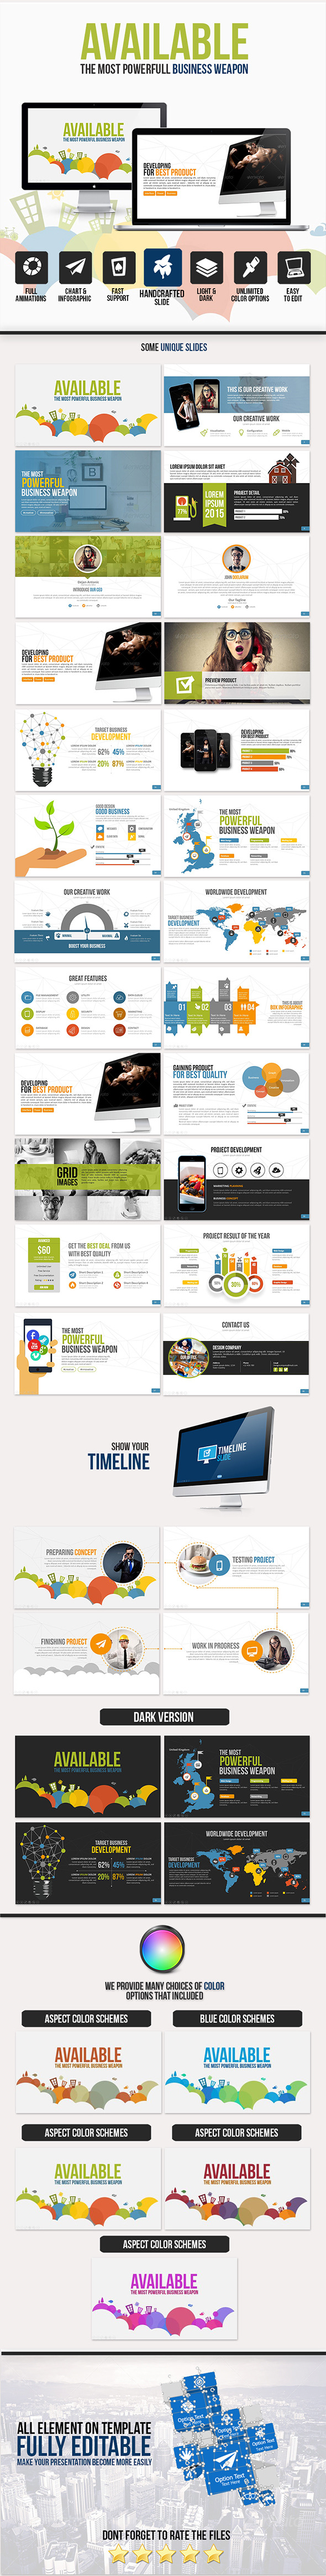 Available PowerPoint Template